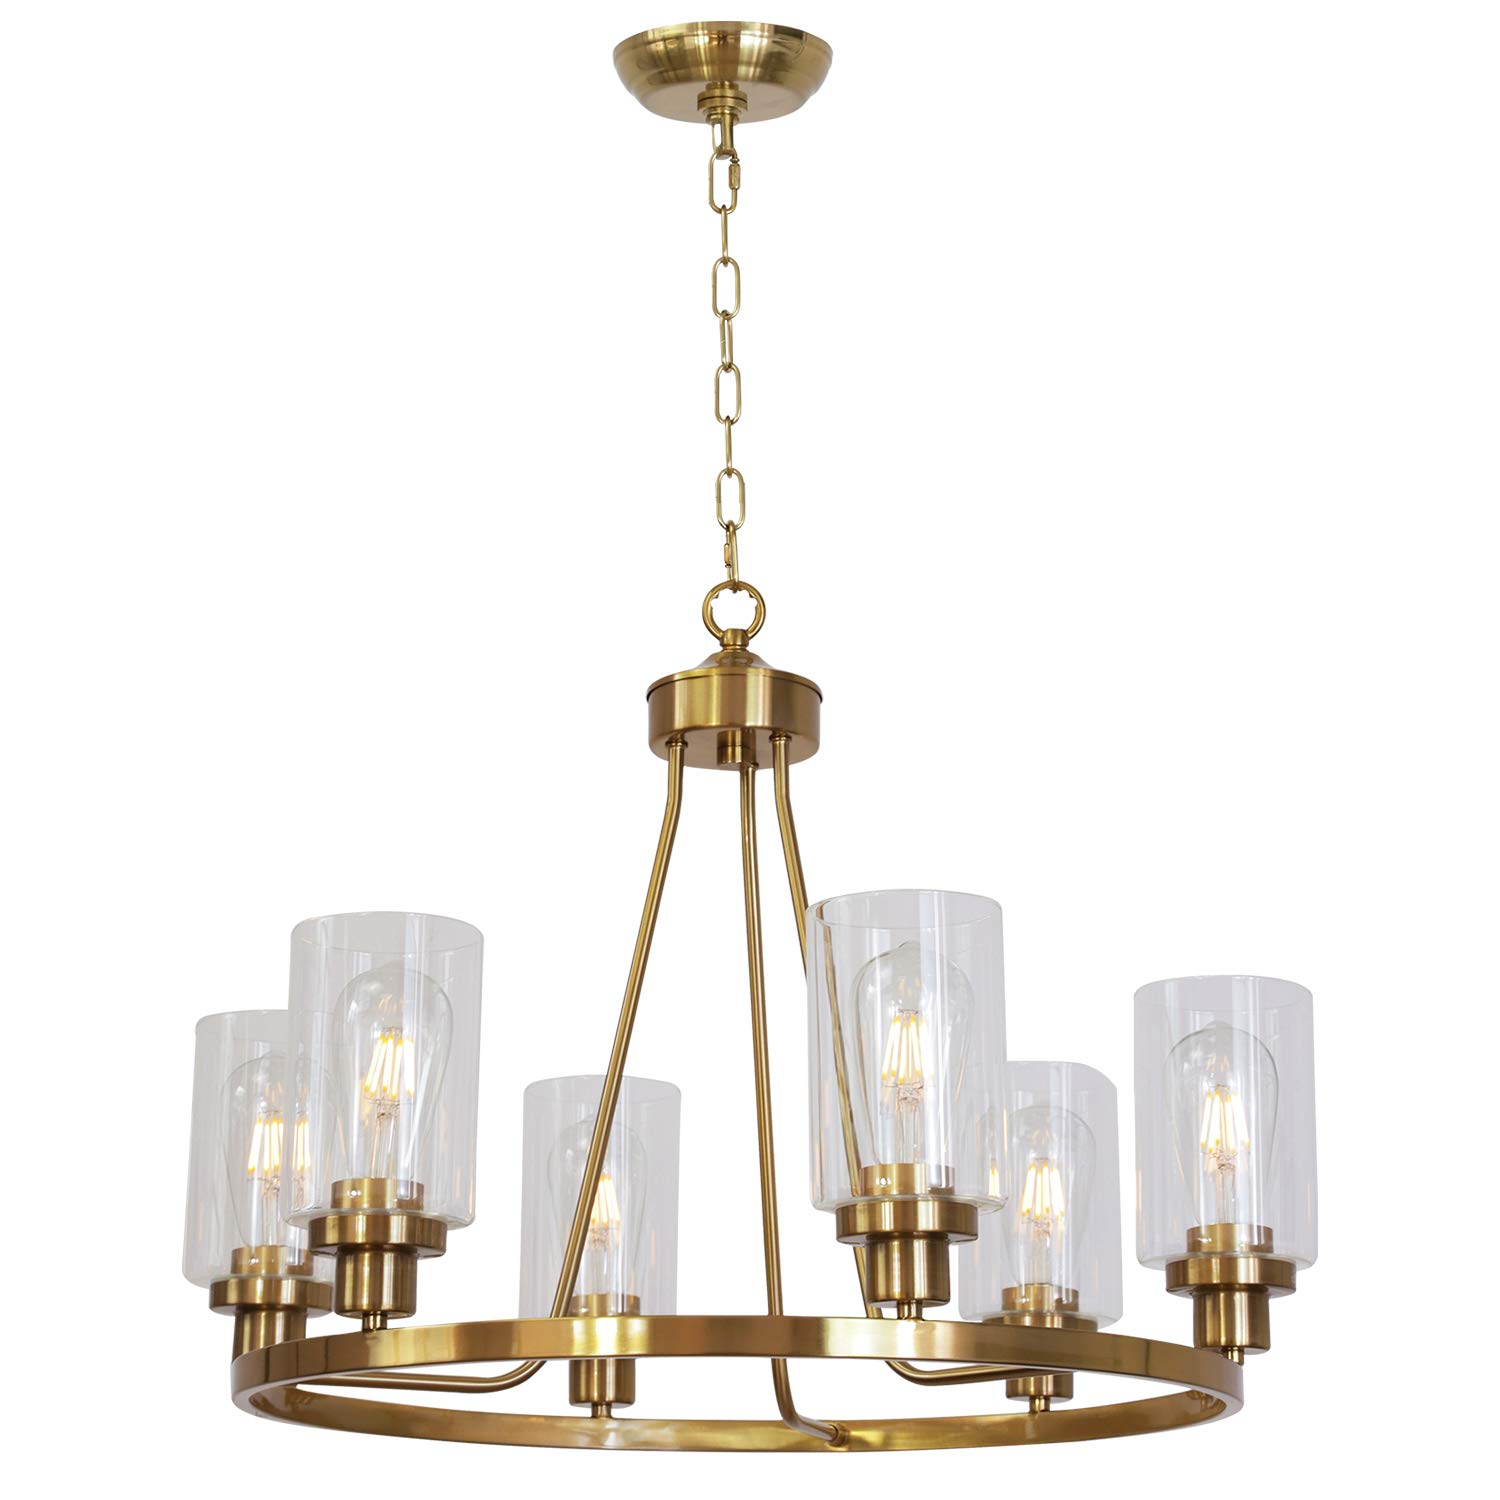 Melucee 25 wide island lighting brass 6 lights round chandelier flush mount dining room lighting fixtures hanging glass pendant light for kitchen foyer